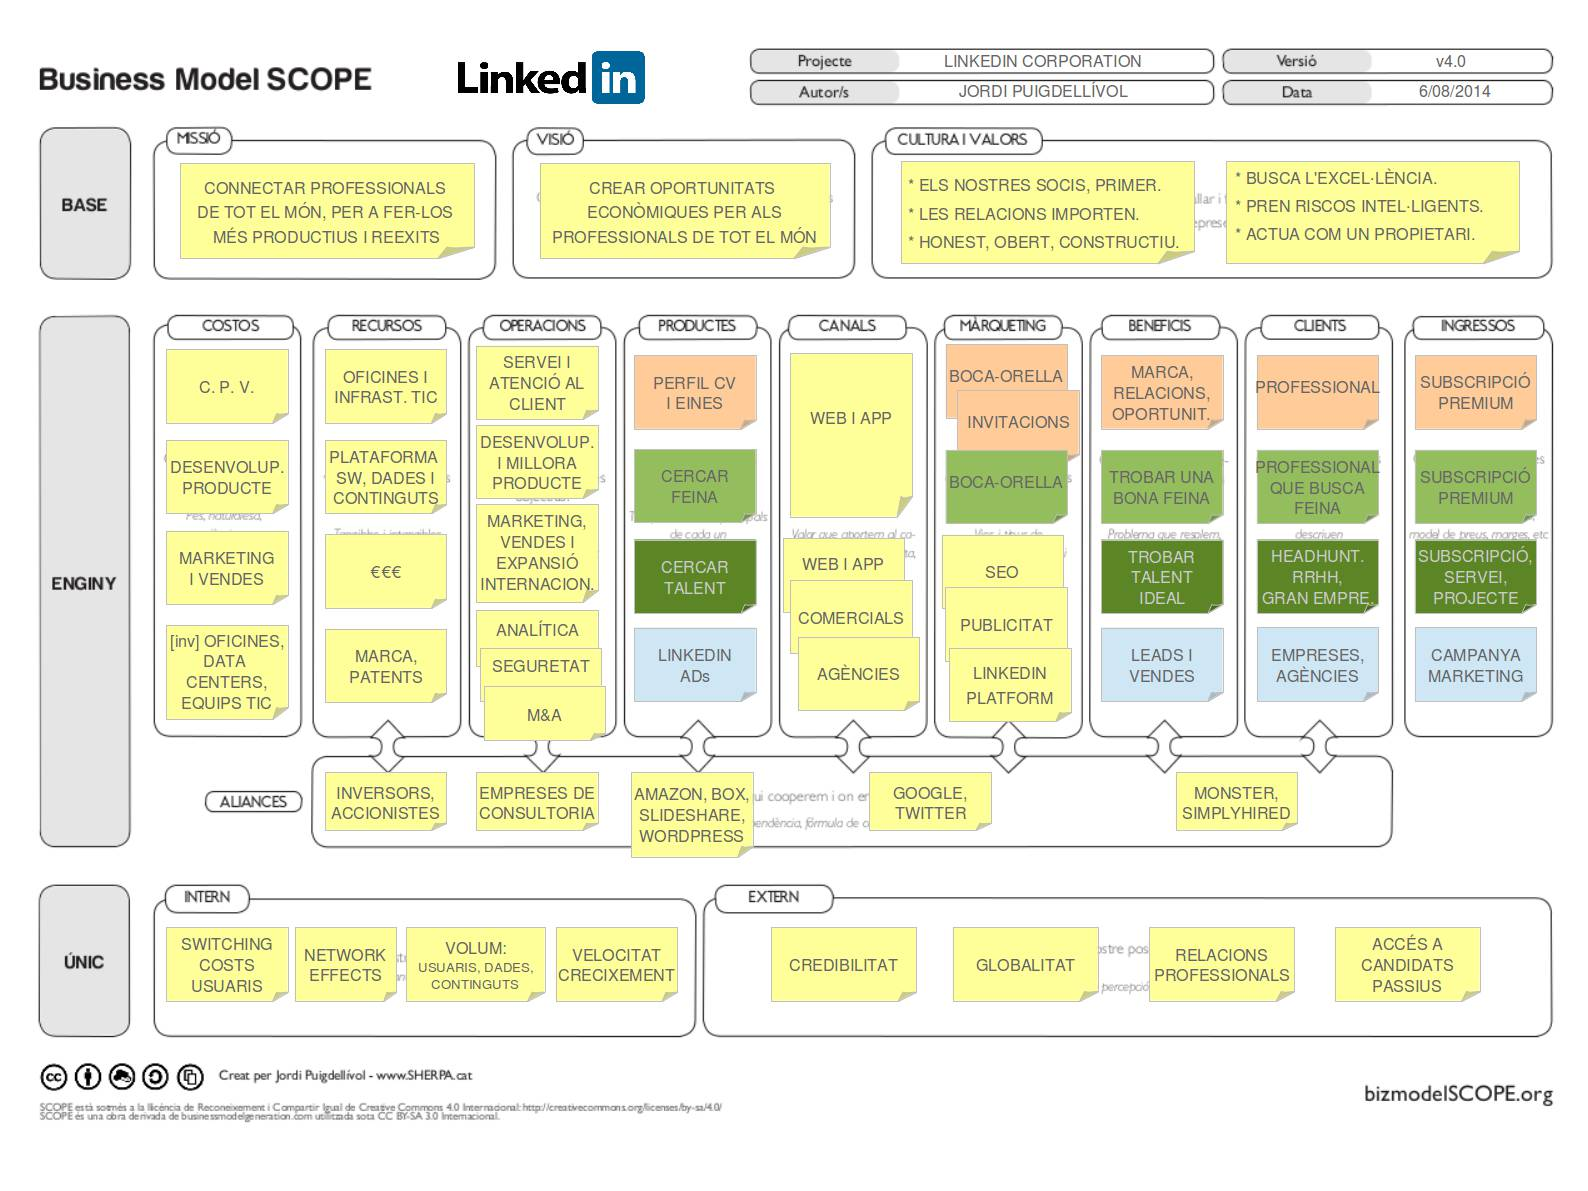 Model de negoci de Linkedin - Business Model SCOPE